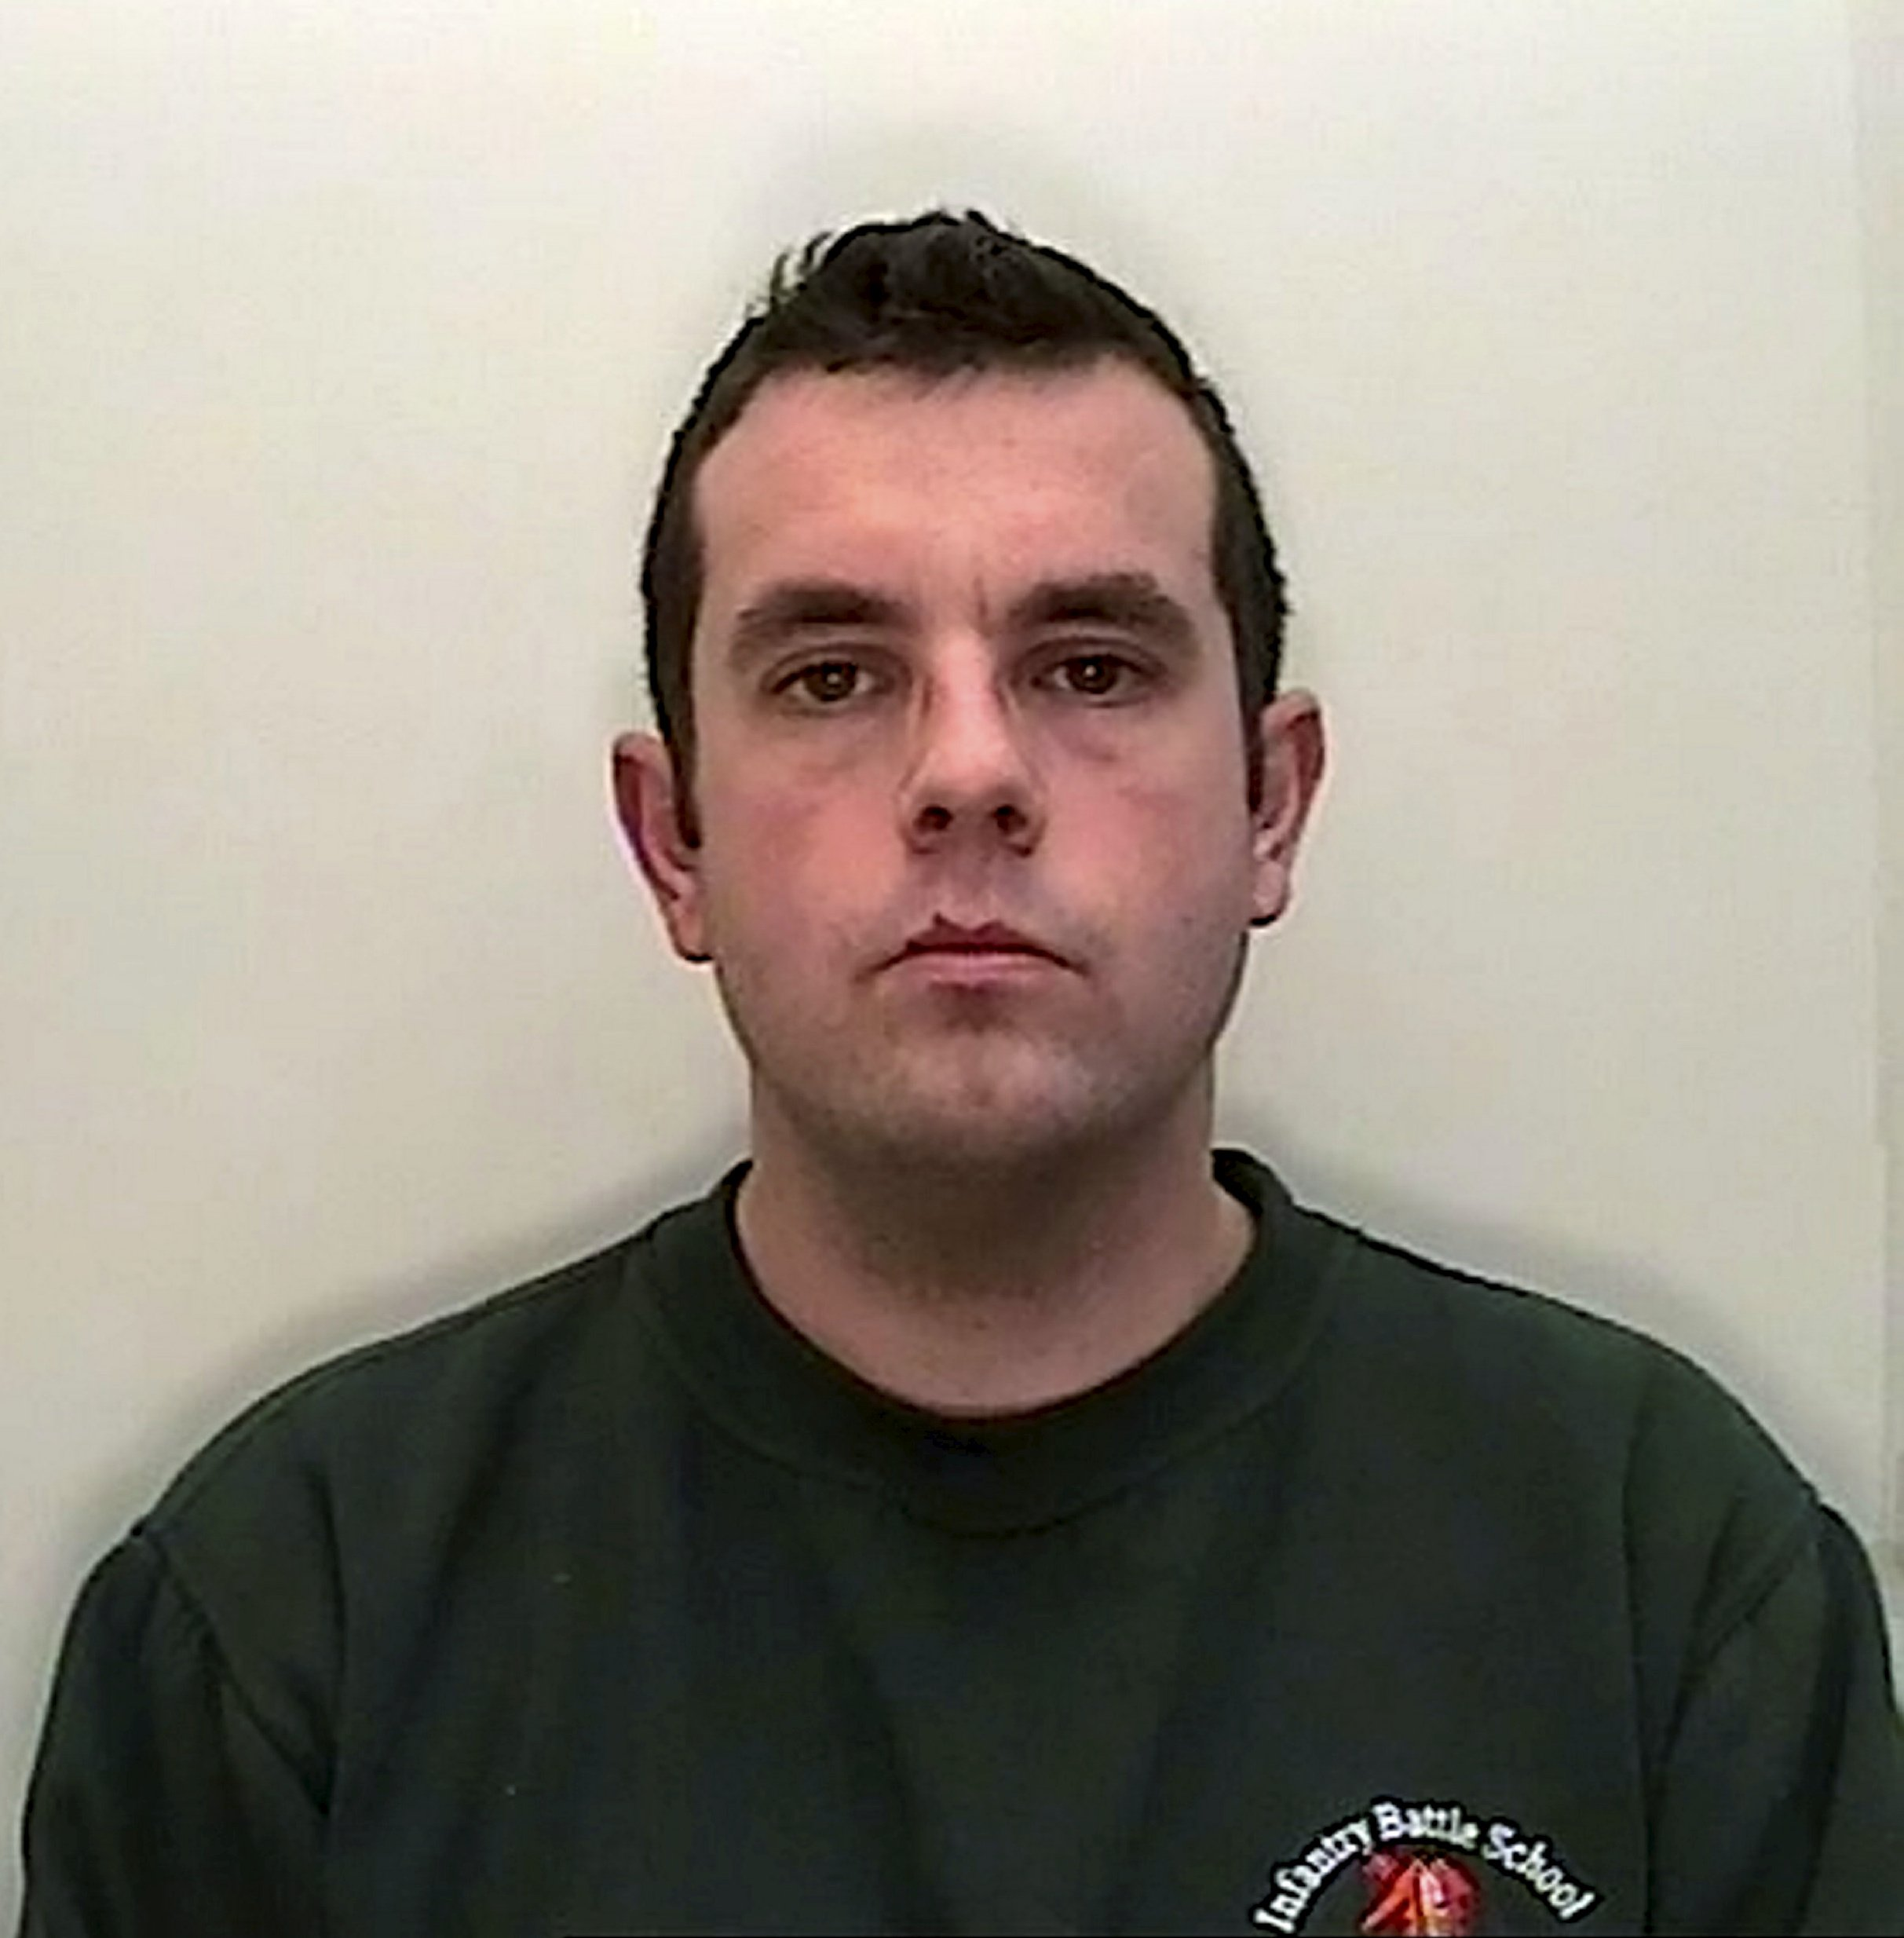 Soldier jailed for 19 years after raping six year old girl at Army base